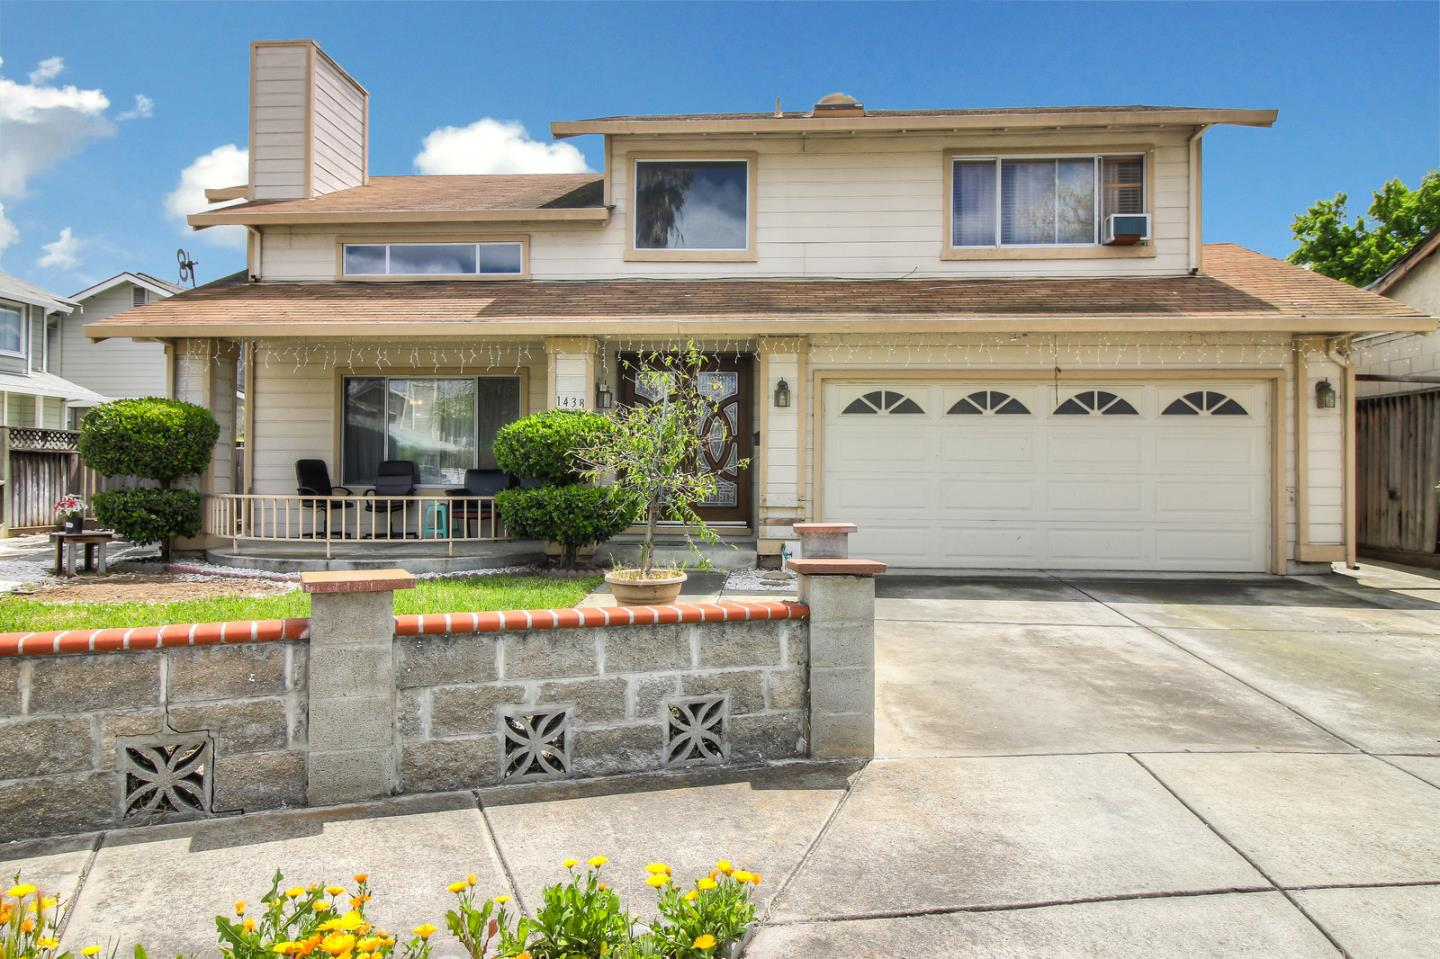 Detail Gallery Image 1 of 20 For 1438 Bali Ct, San Jose, CA 95122 - 3 Beds | 2/1 Baths